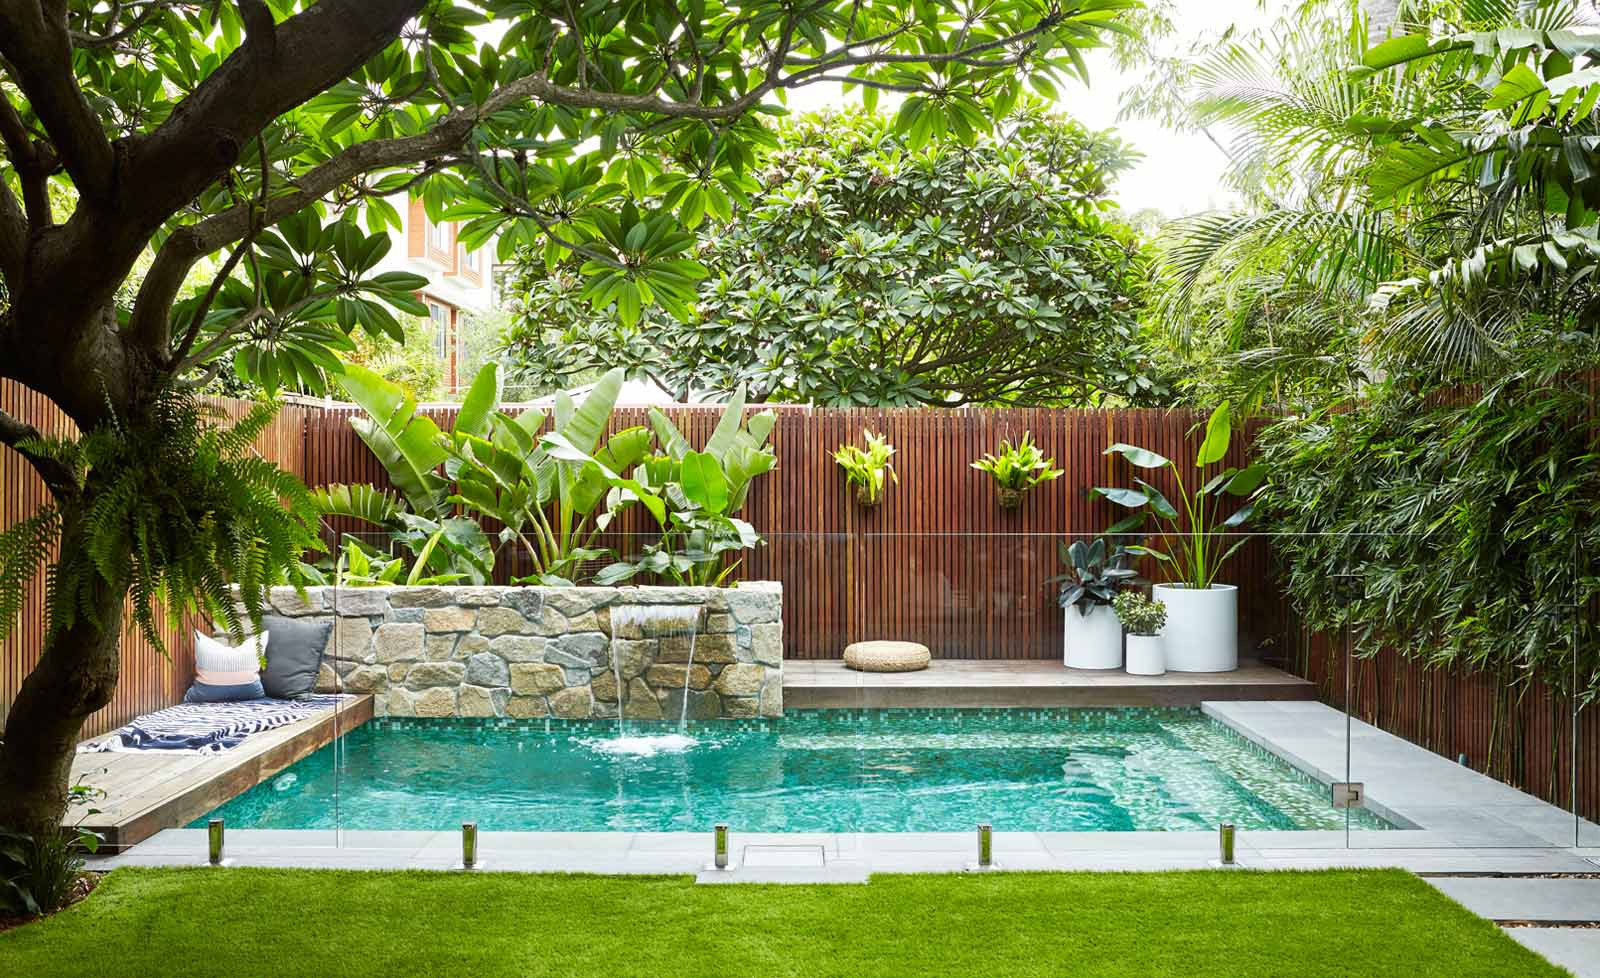 Outdoor Landscape Pool  Trees South Africa Landscapingwith trees around a